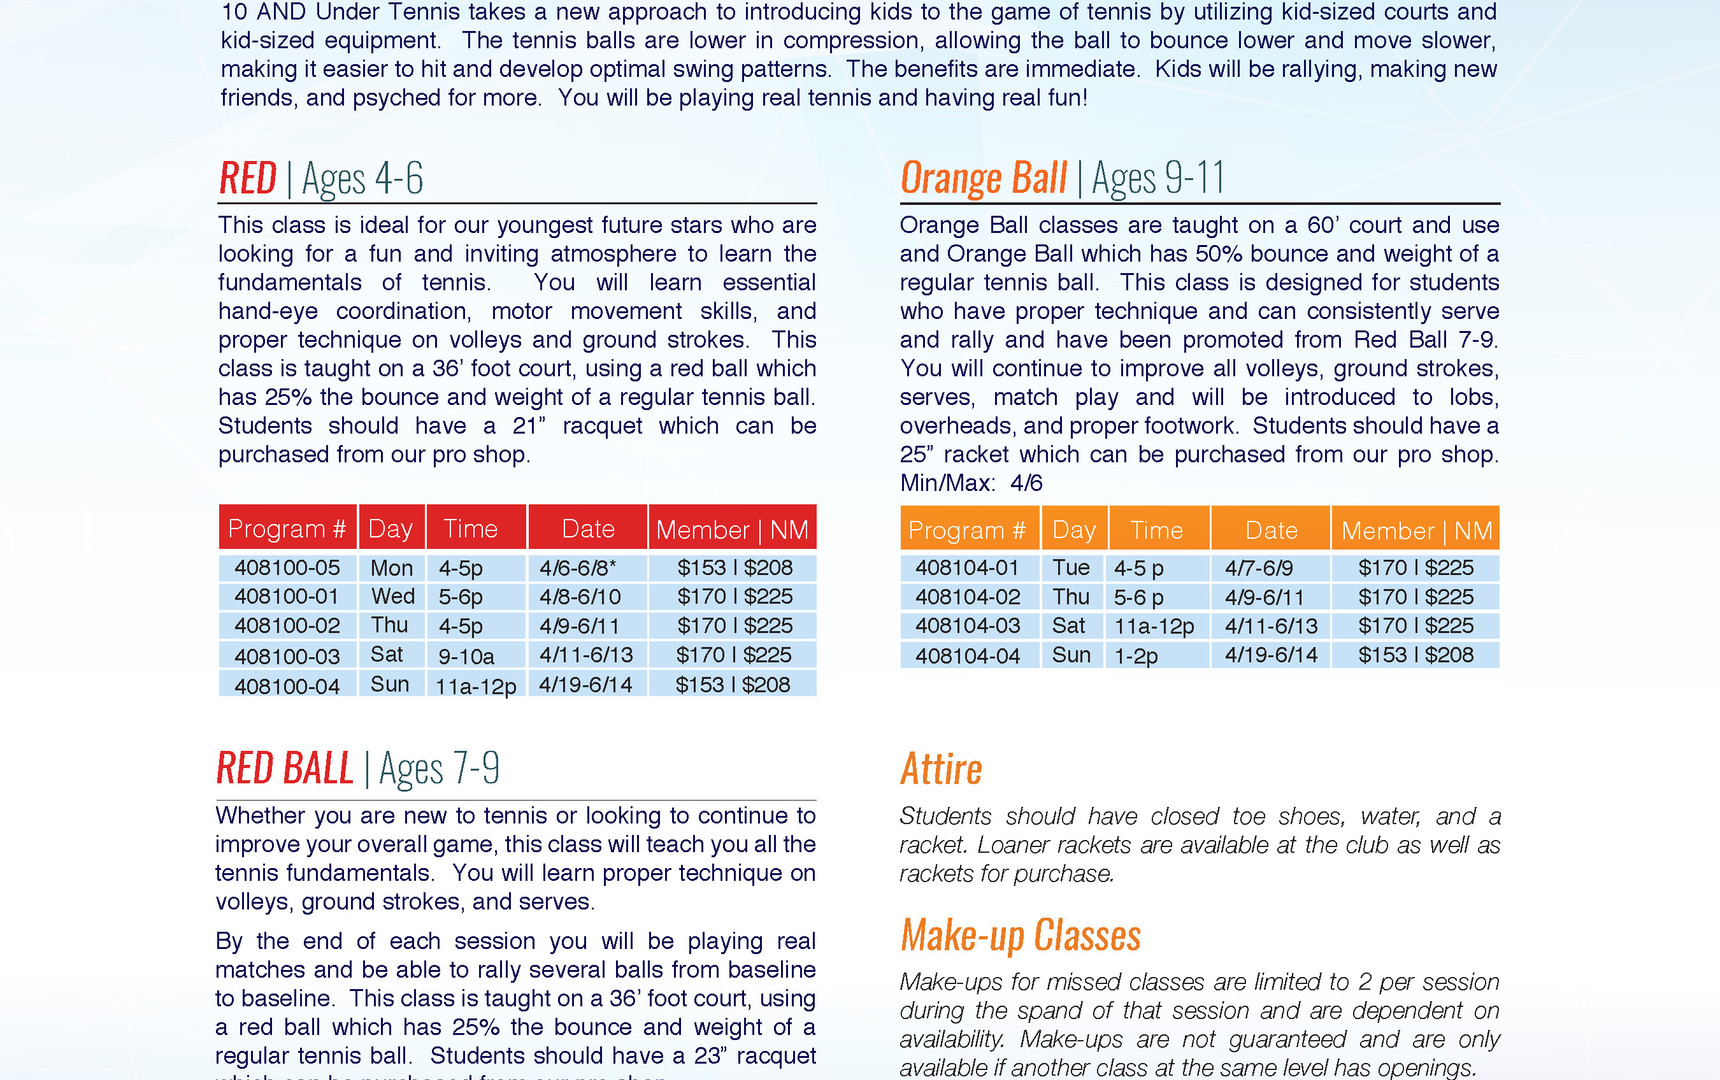 Spring Playbook 2020 Final Draft_Page_36